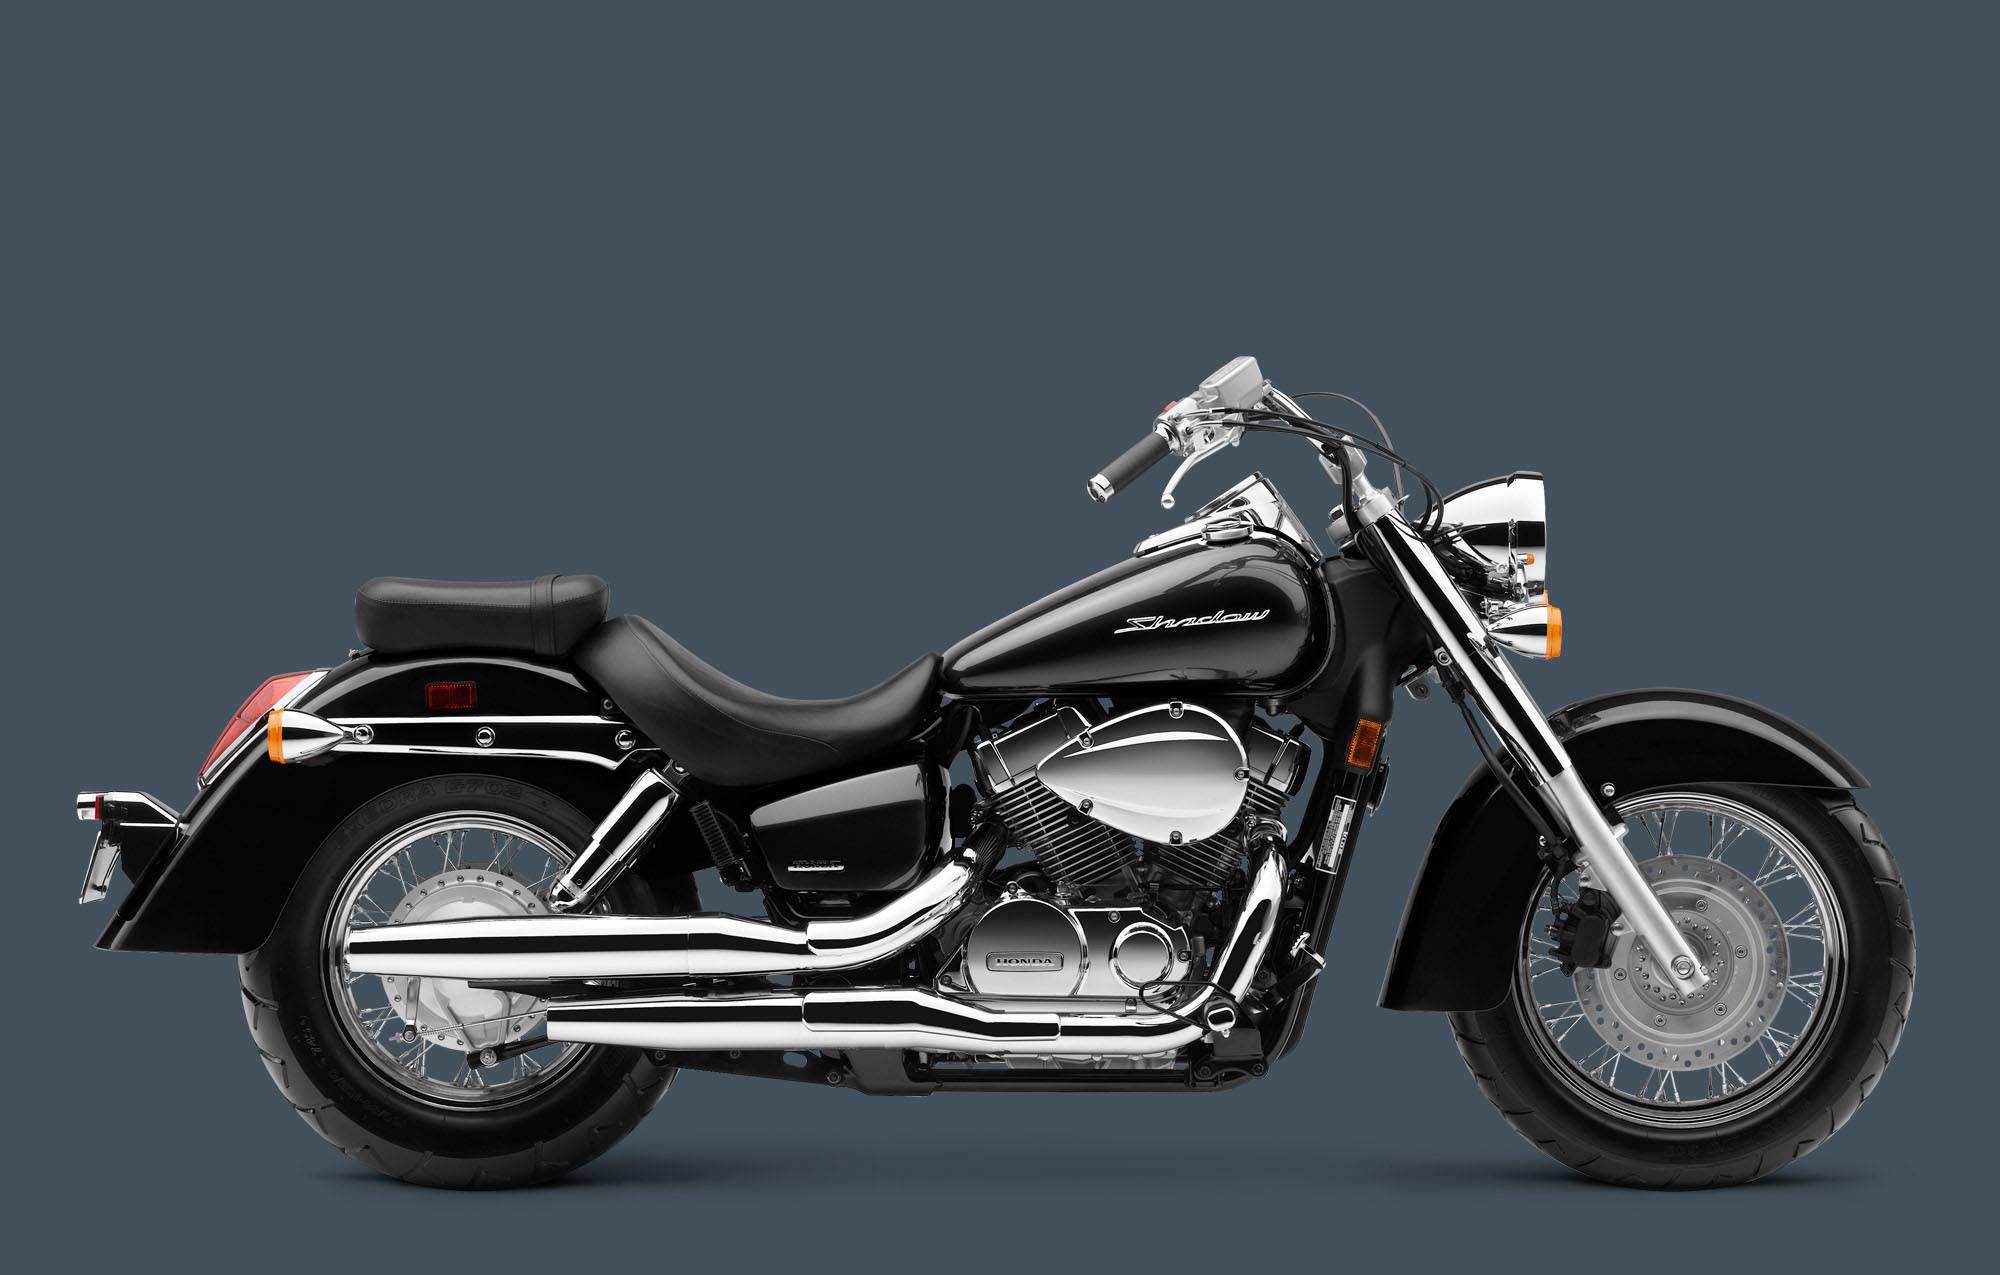 Honda shadow aero old school style new specs